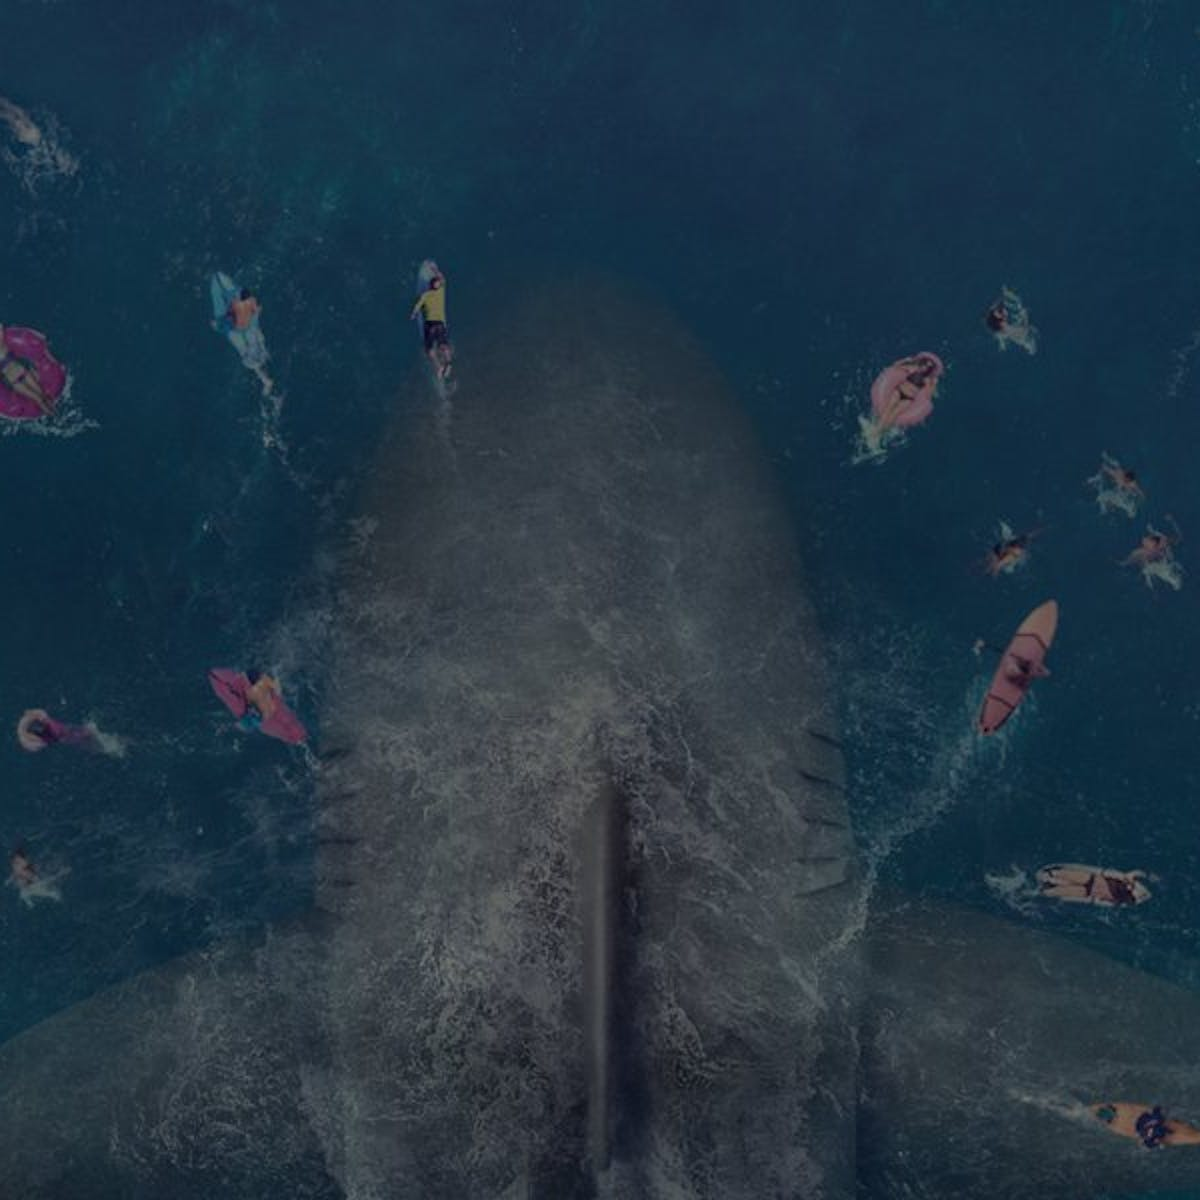 Friday essay: The Meg is a horror story but our treatment of sharks